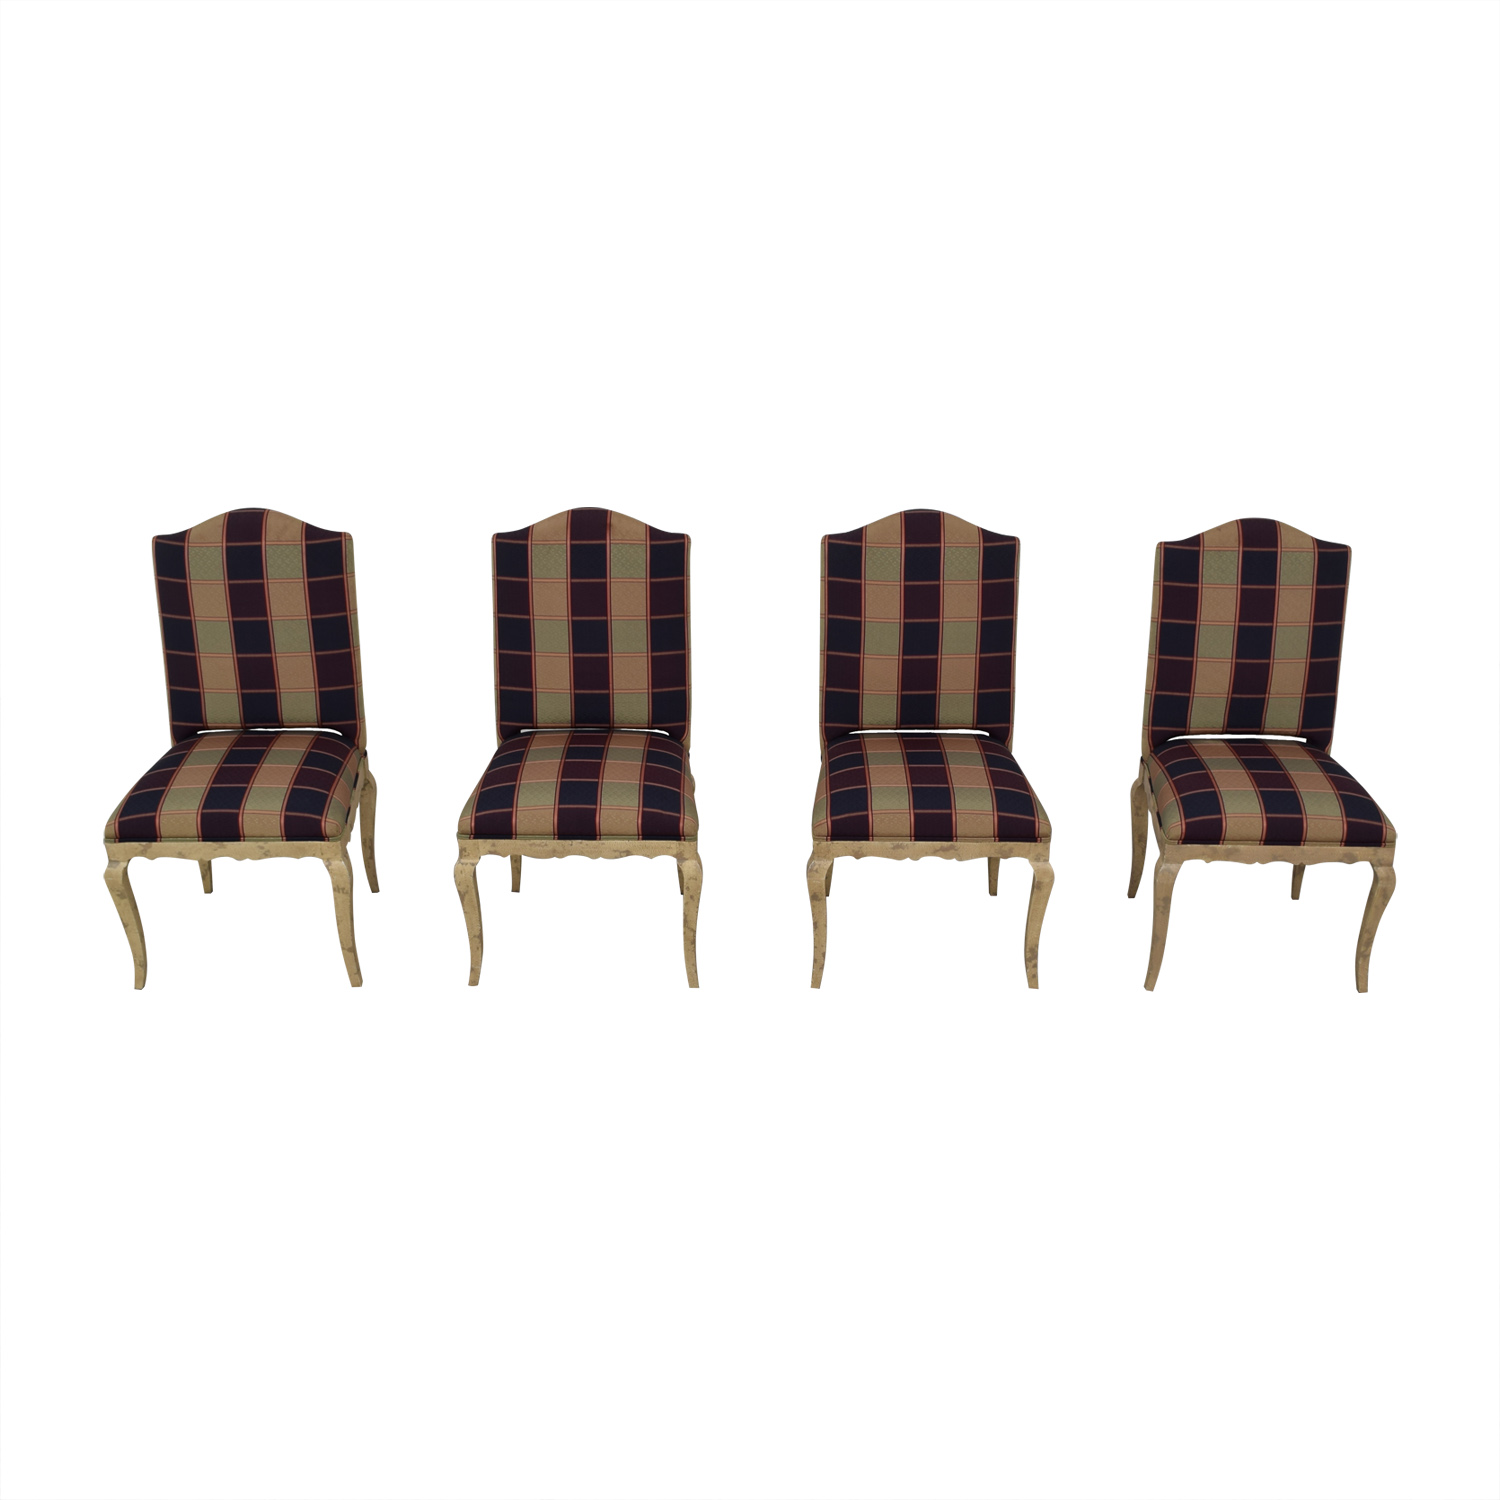 Custom Fabric Dining Chairs coupon